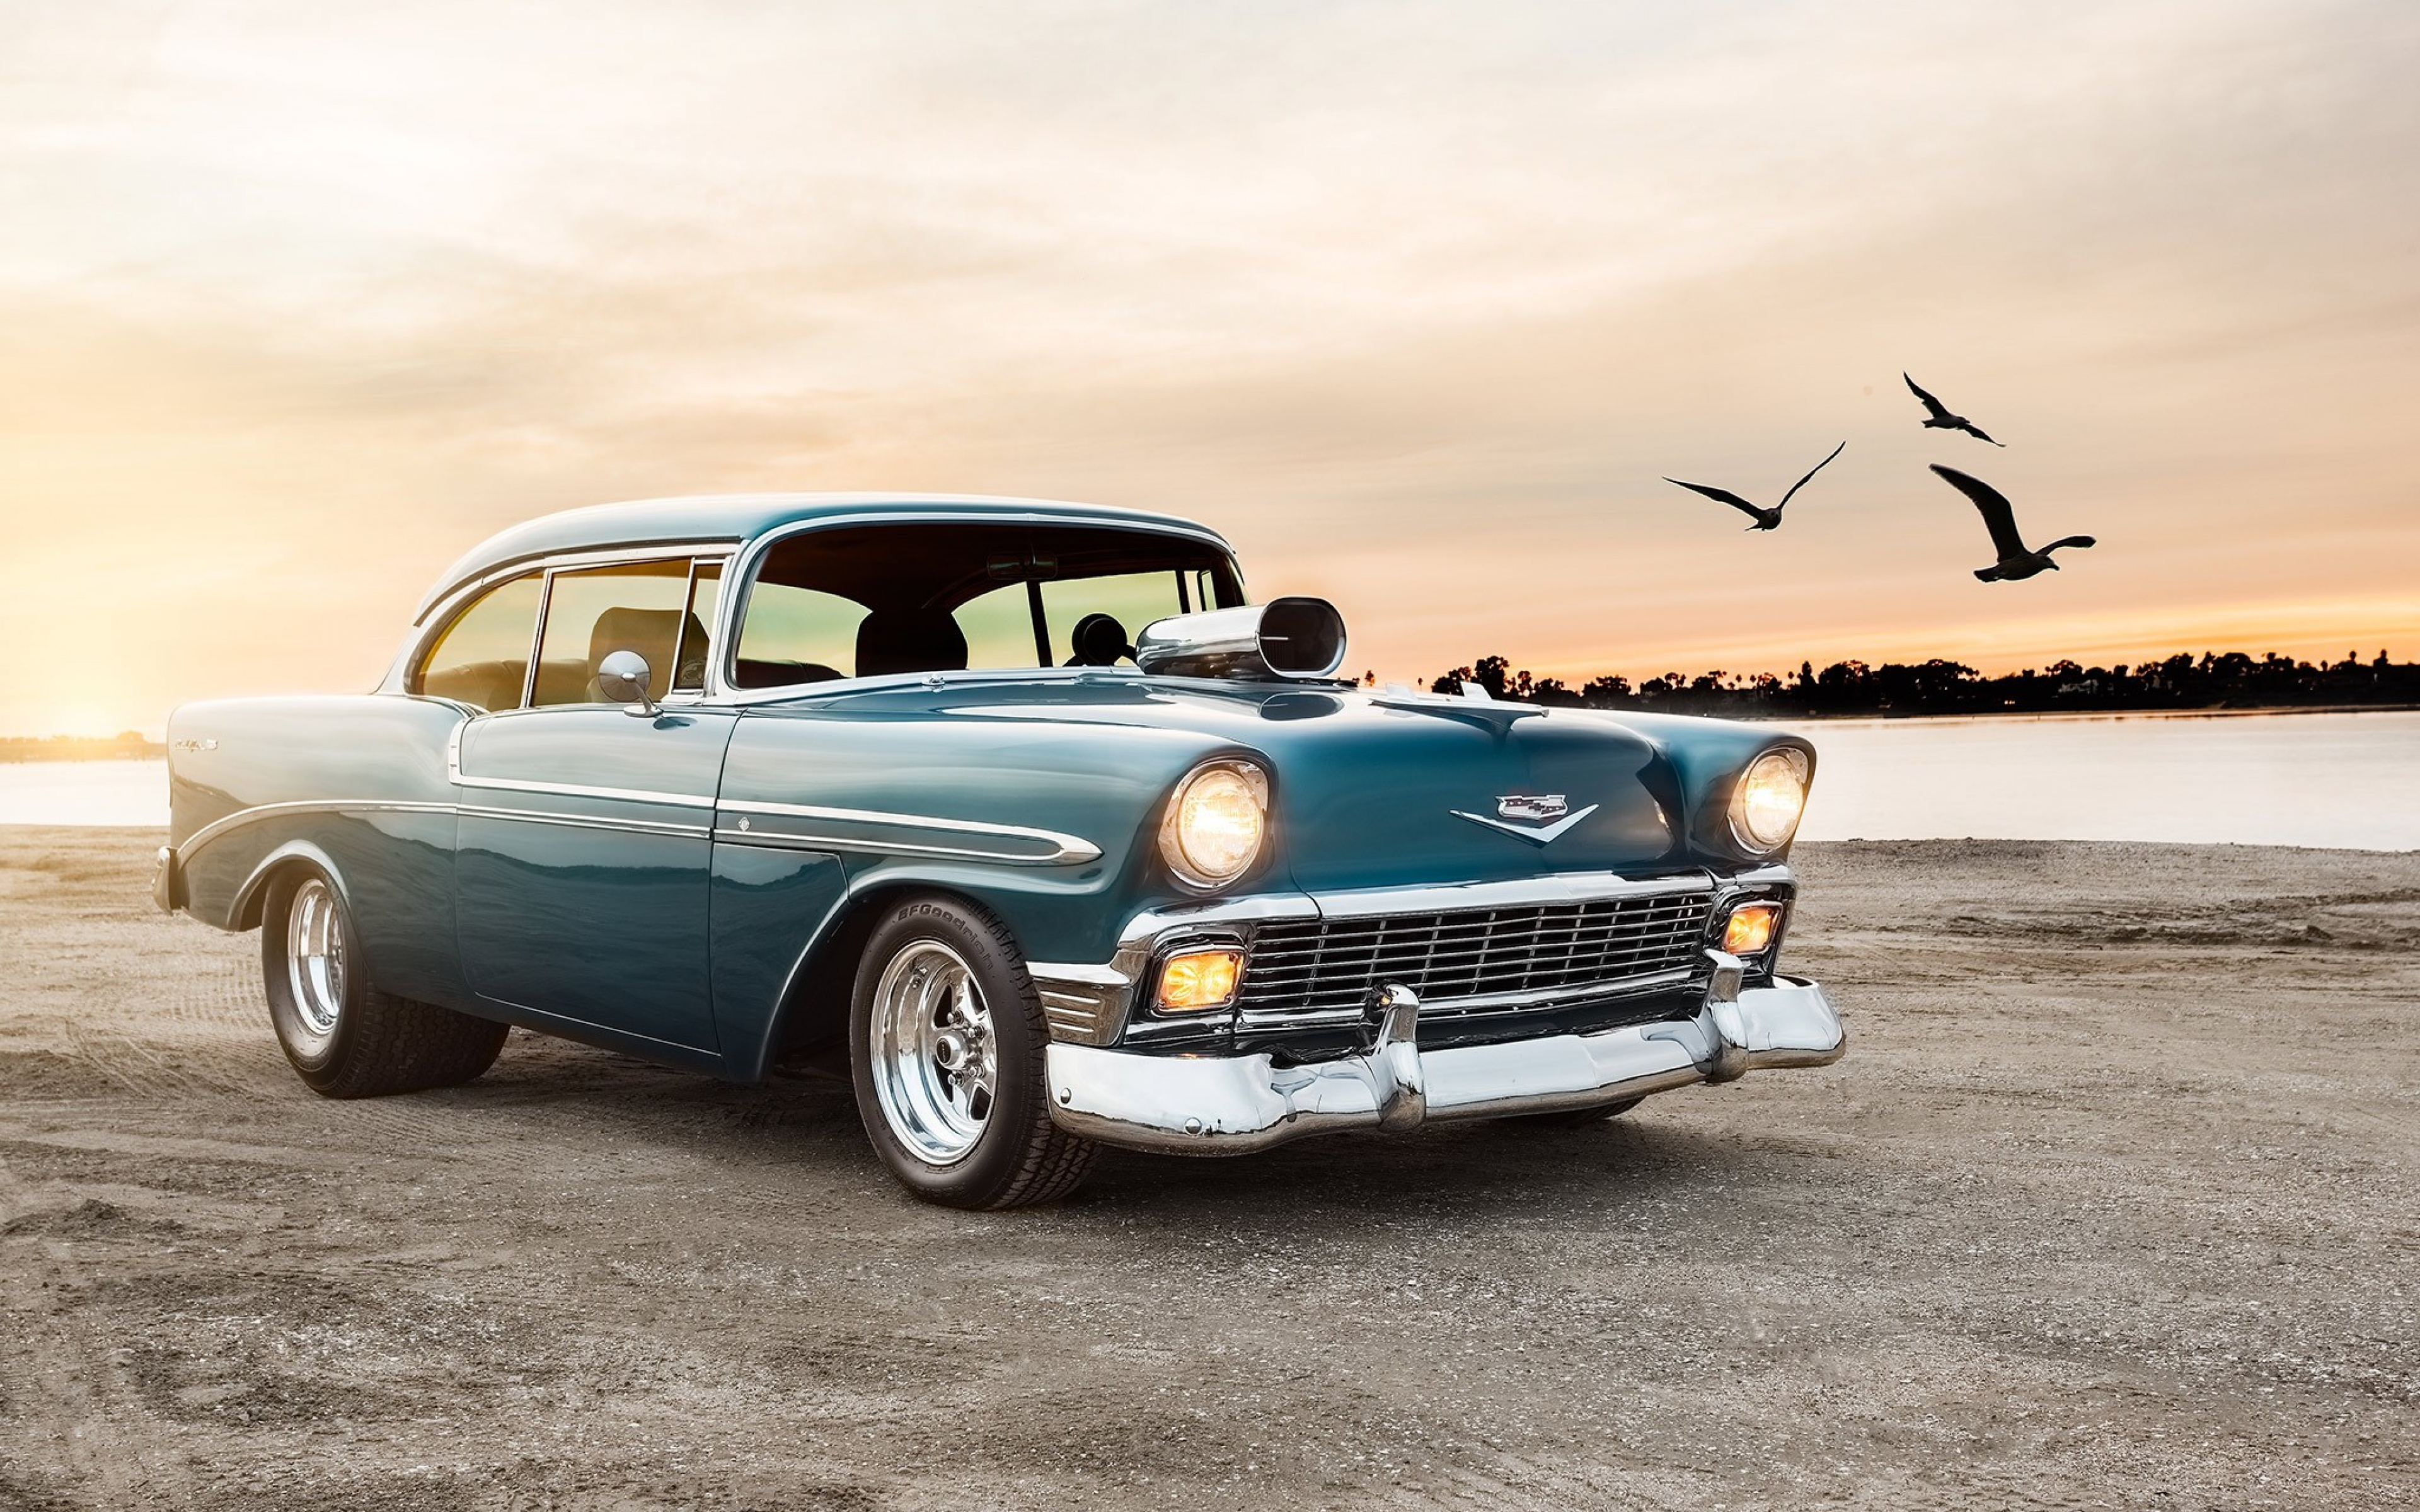 Chevrolet Bel Air Sport Coupe, HD Cars, 4k Wallpapers